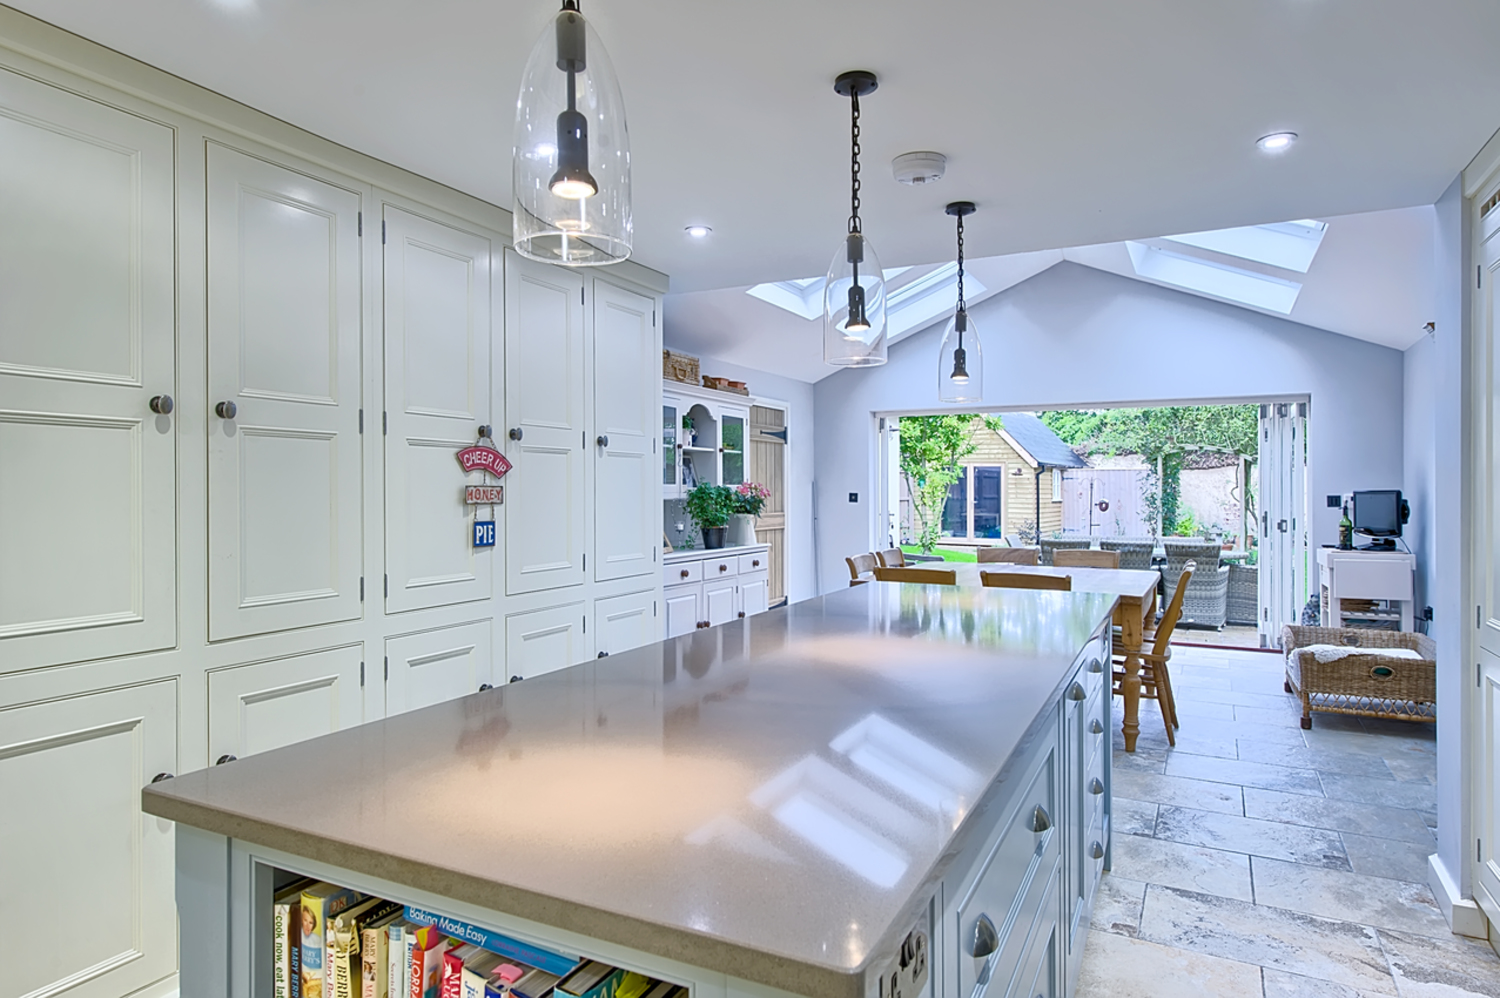 architects-cambridge-house-resign-kitchen-island-counter-dining-room-harvey-norman-0970 copy.jpg